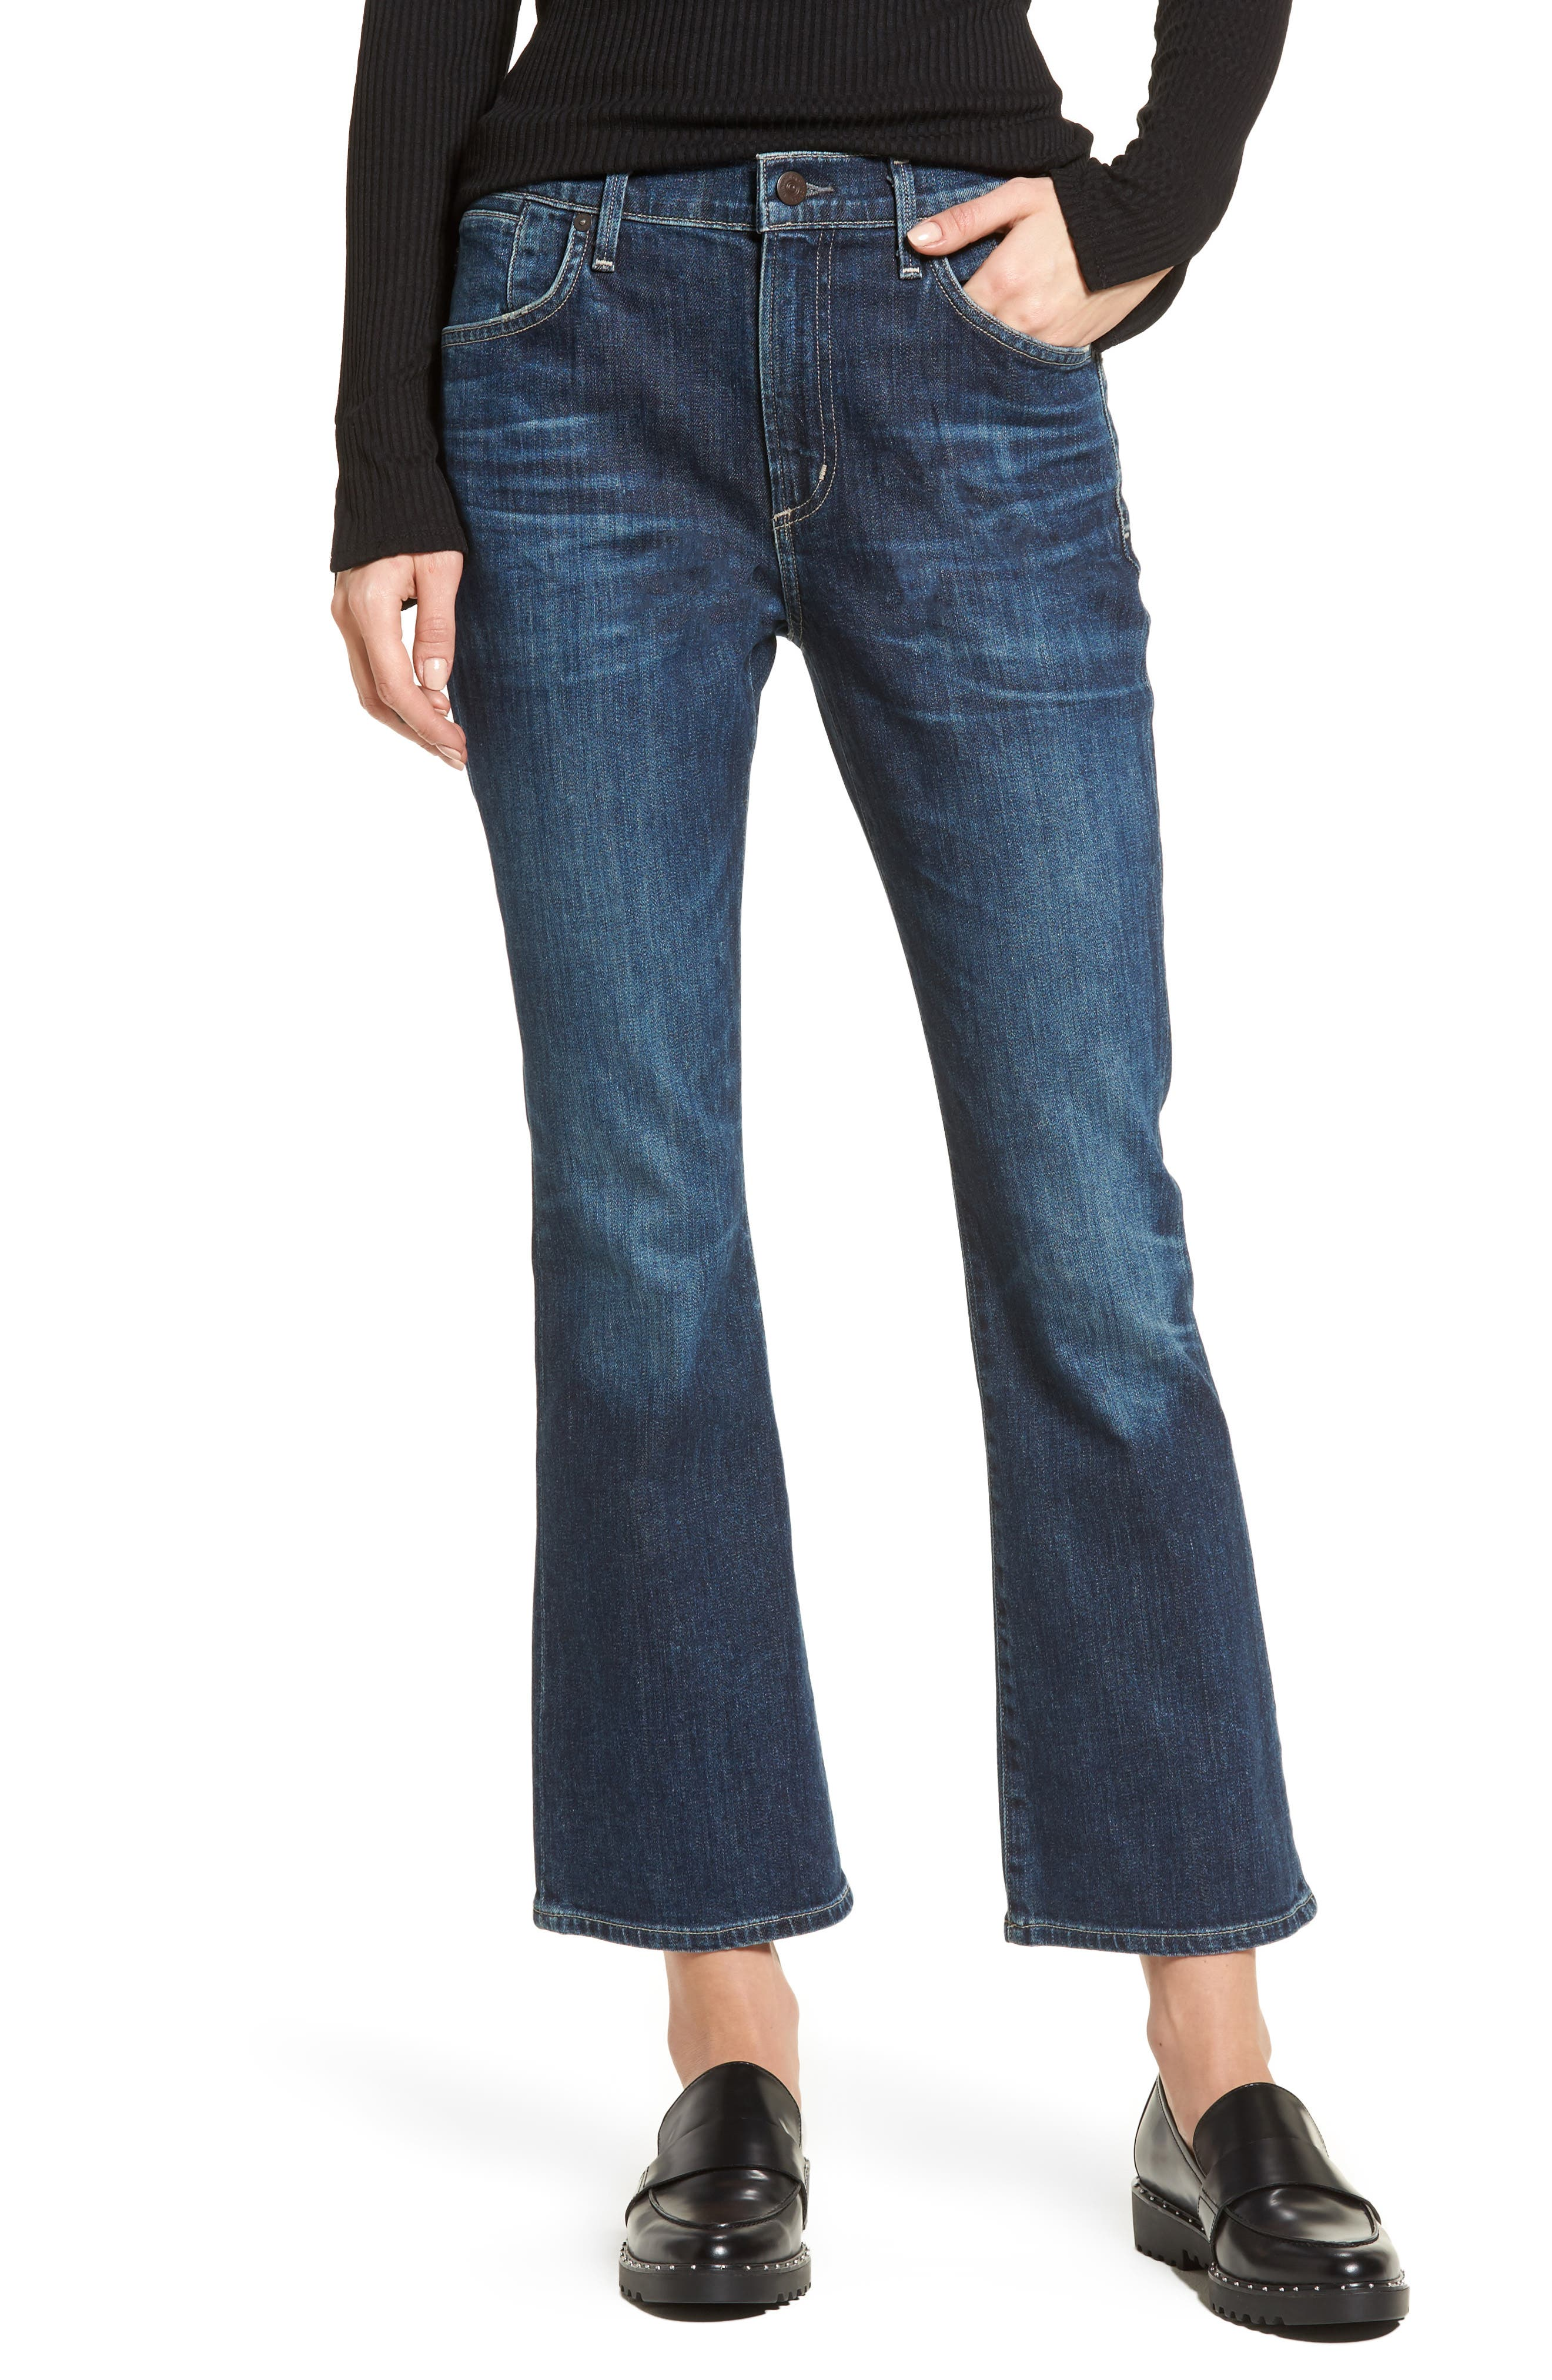 Main Image - Citizens of Humanity Fleetwood Crop Flare Jeans (Sonora)